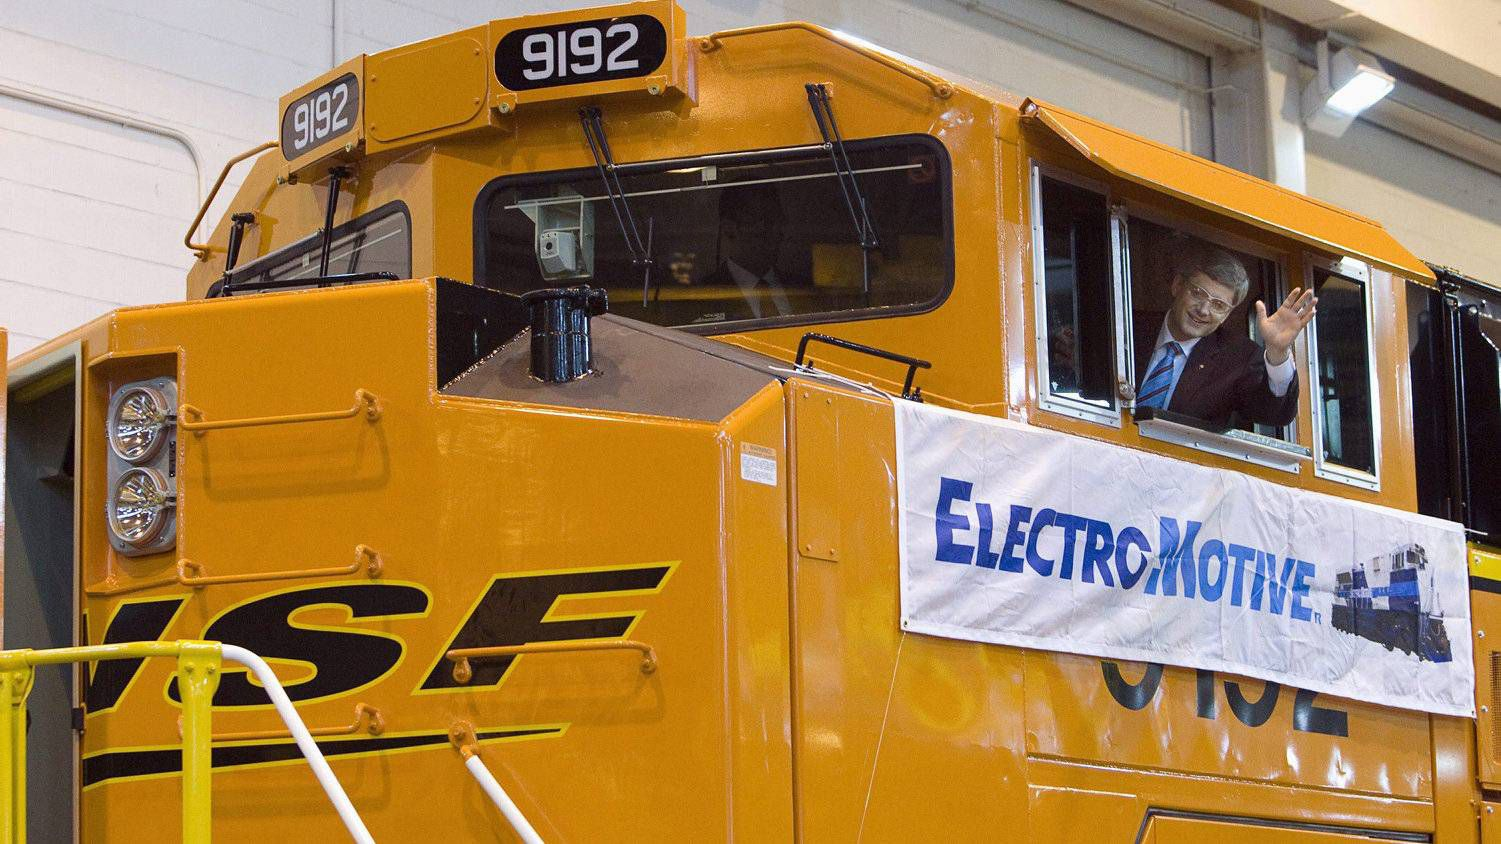 Electro Motive Diesel >> The 5 Million Electro Motive Subsidy That Wasn T The Globe And Mail